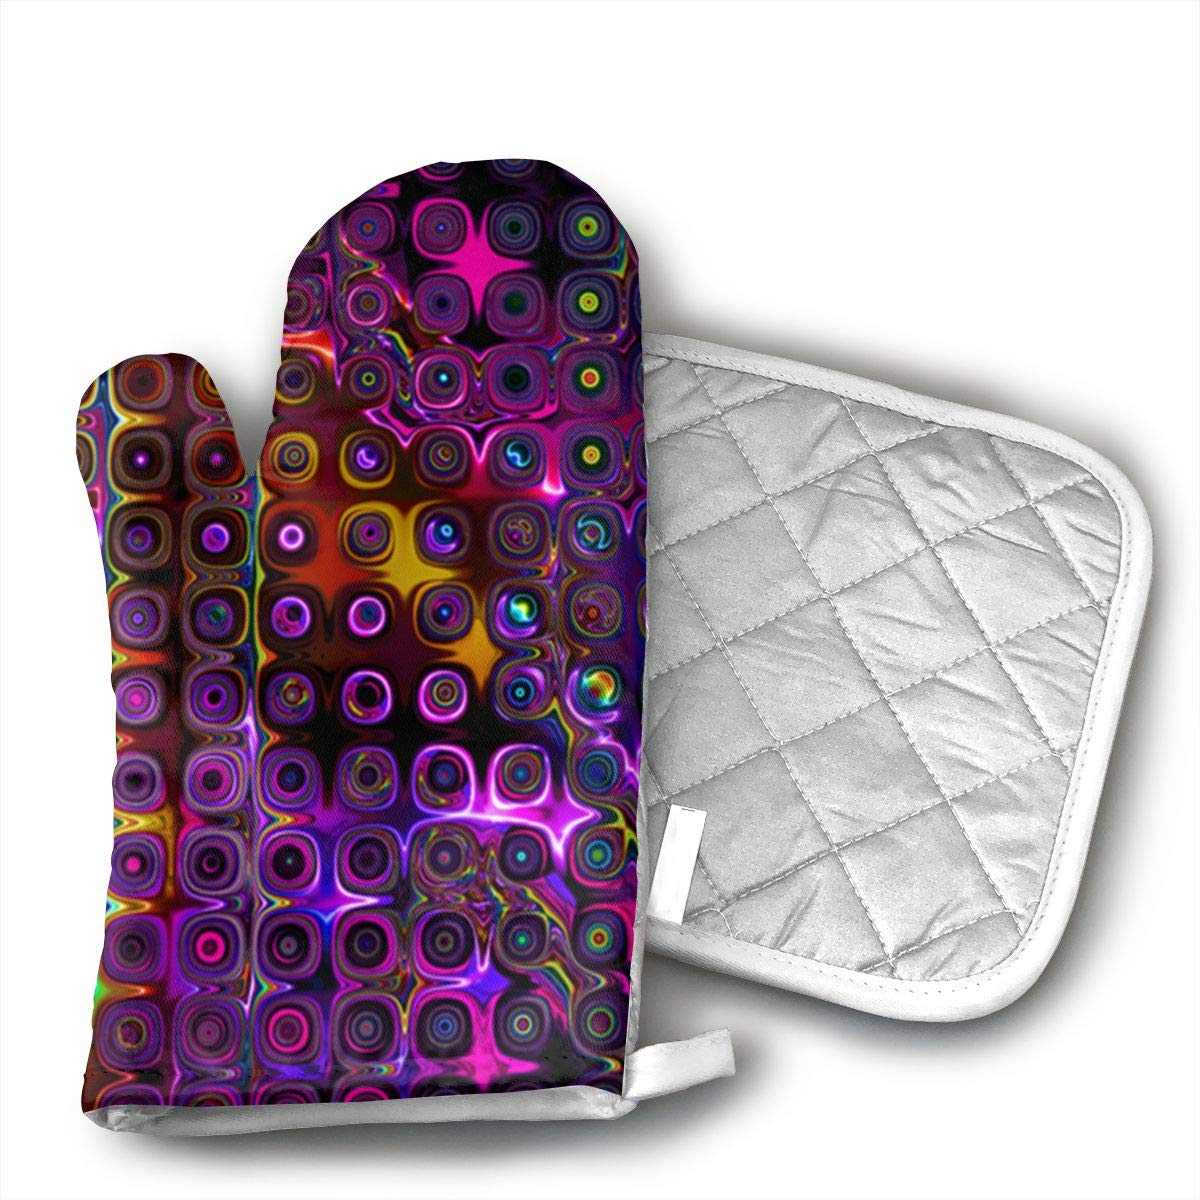 ujd DISCO CLUB NEON LIGHTS Neoprene Oven Mitts and Potholder Set-Heat Resistant Oven Gloves to Protect Hands and Surfaces with Non-Slip Grip, Hanging Loop-Ideal for Handling Hot Cookware Items